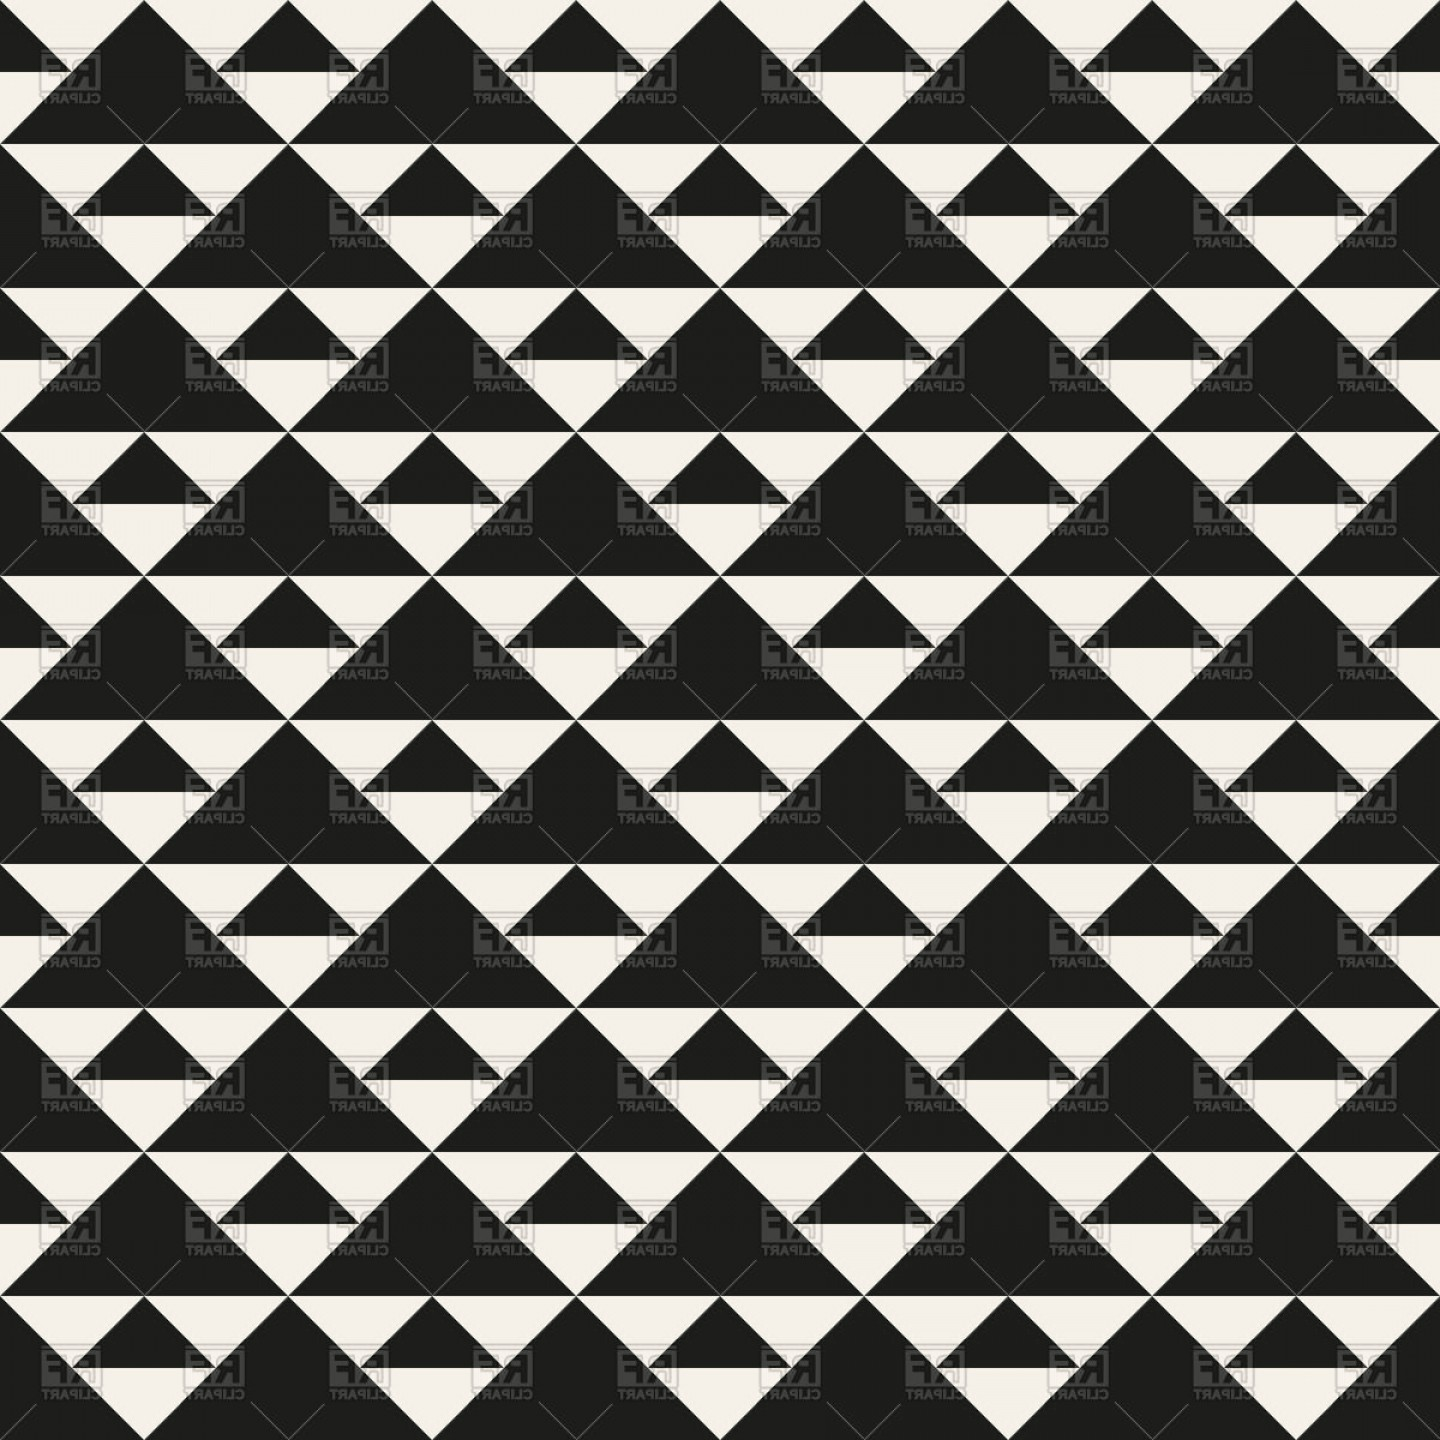 Vector Art Geometric Designs: Seamless Black And White Geometric Pattern With Triangles Vector Clipart